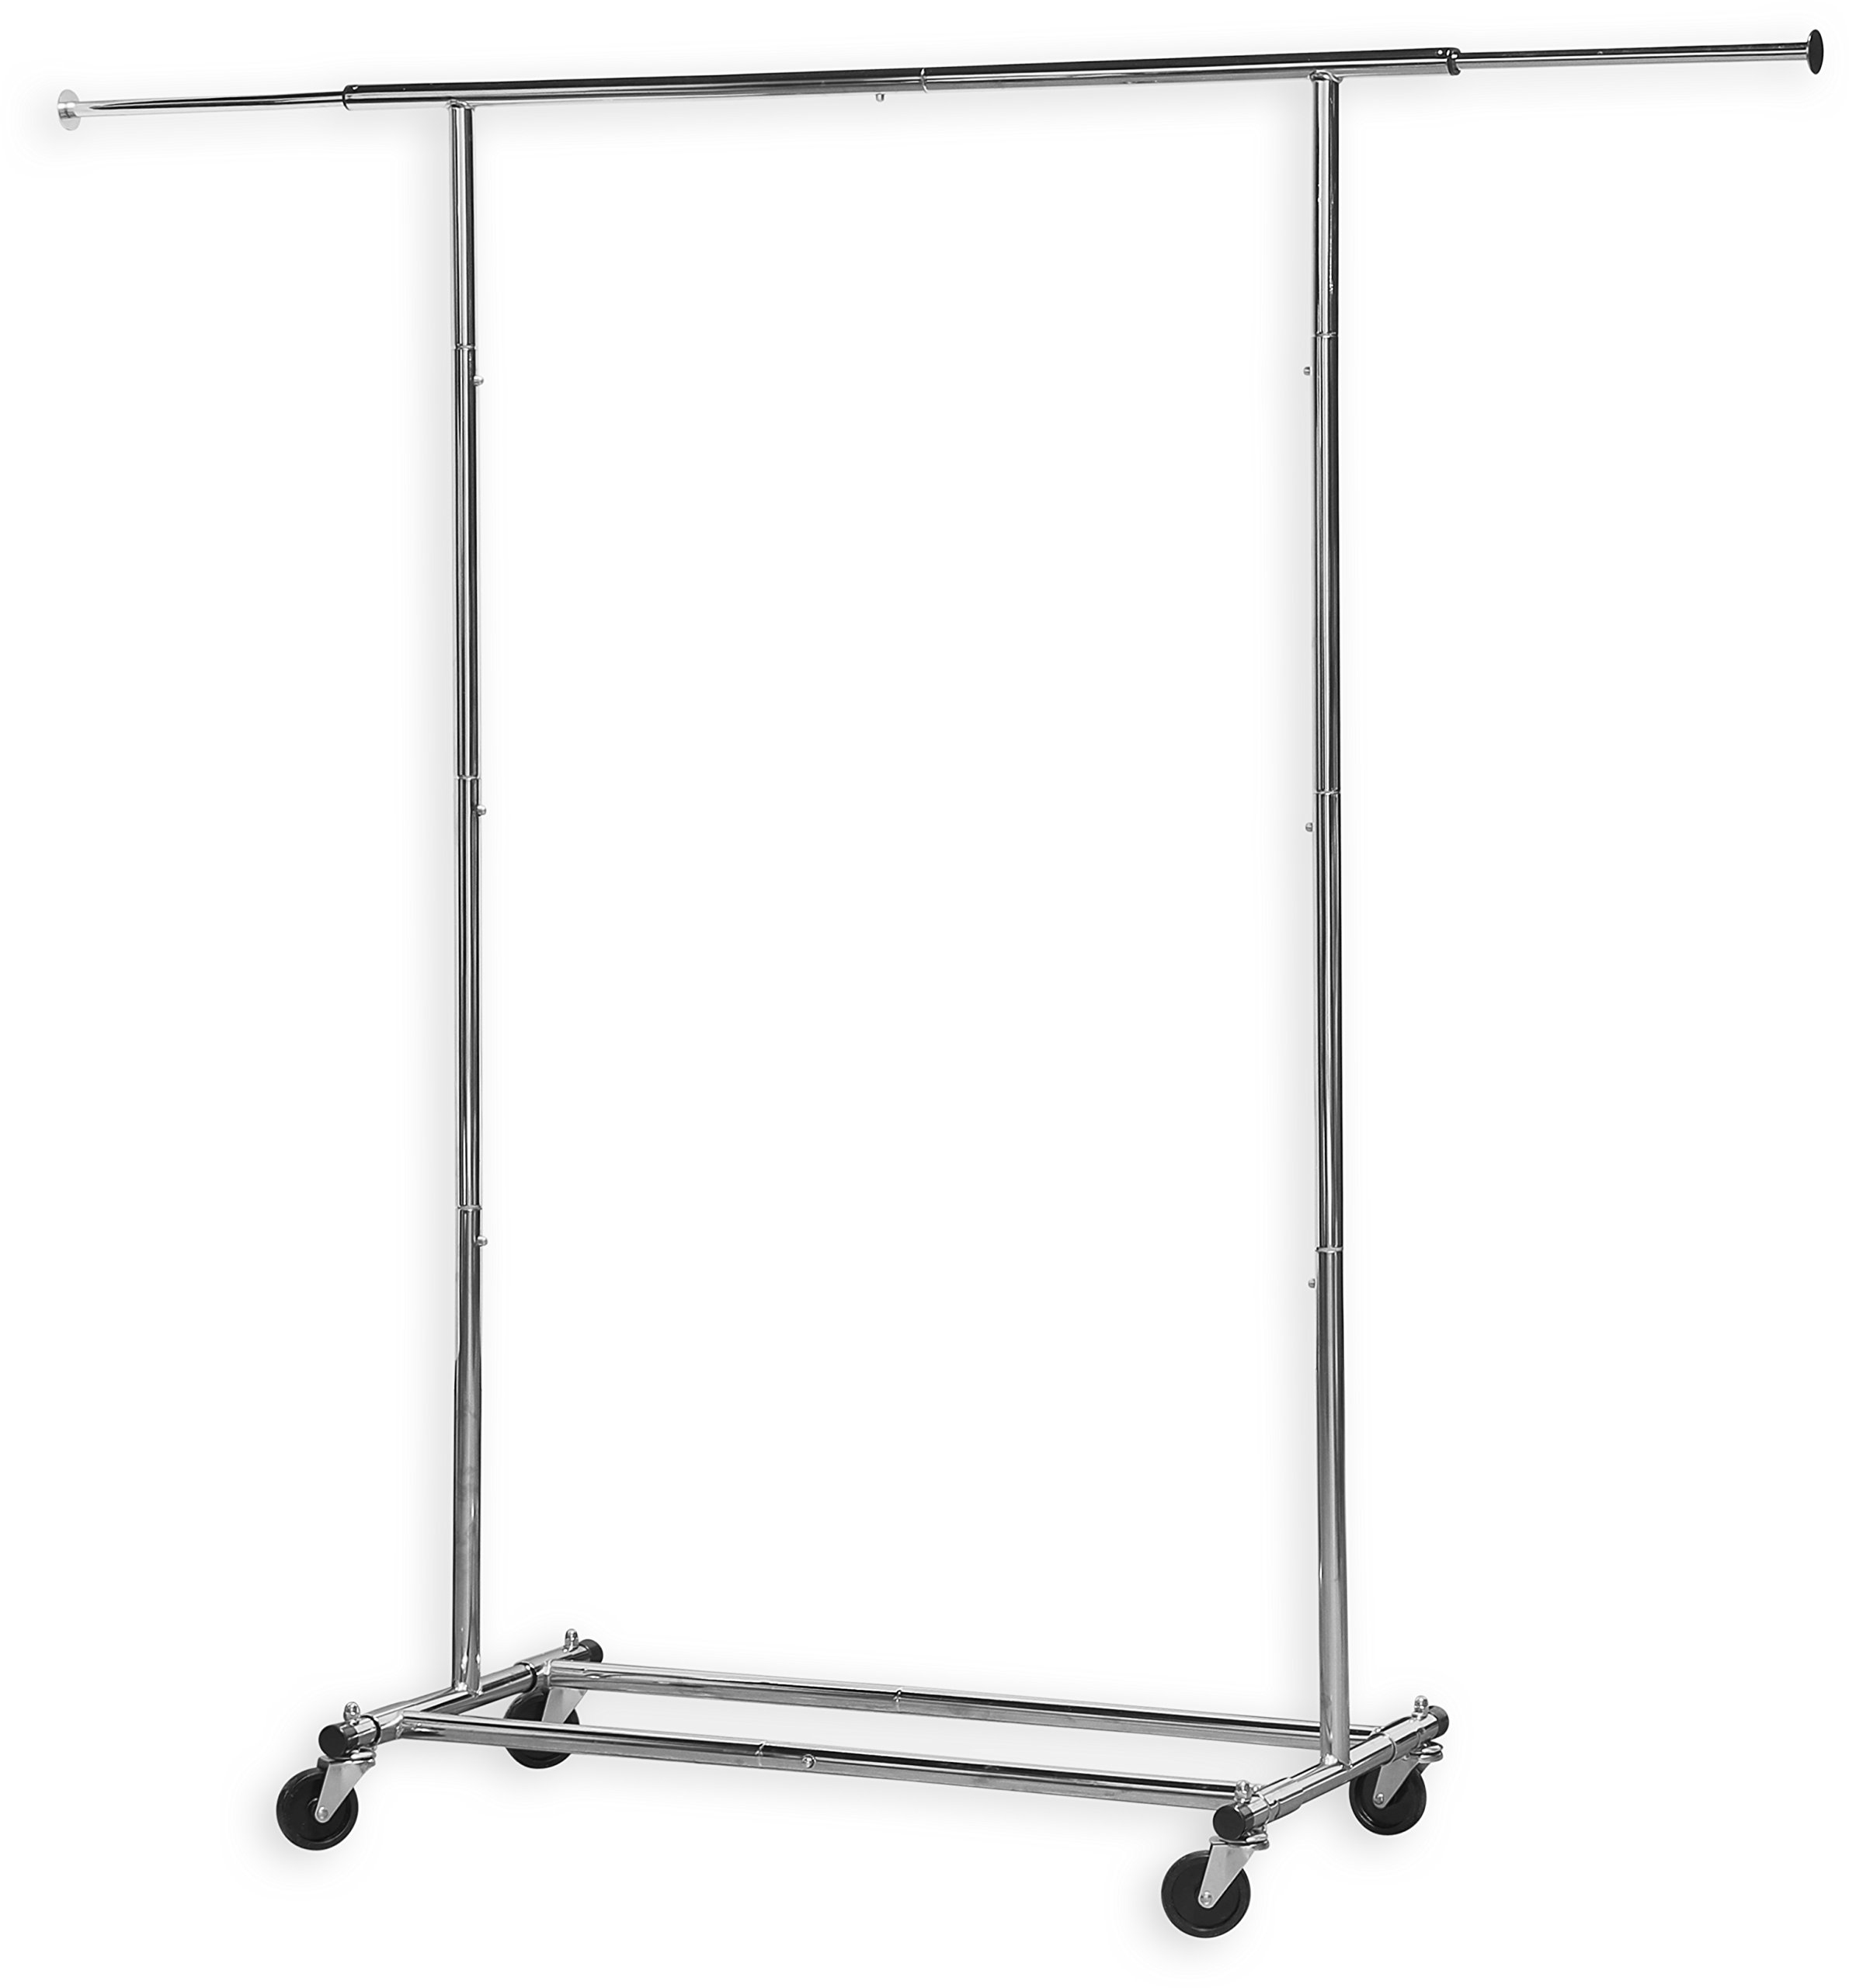 Simple Houseware Heavy Duty Clothing Garment Rack, Chrome by Simple Houseware (Image #3)